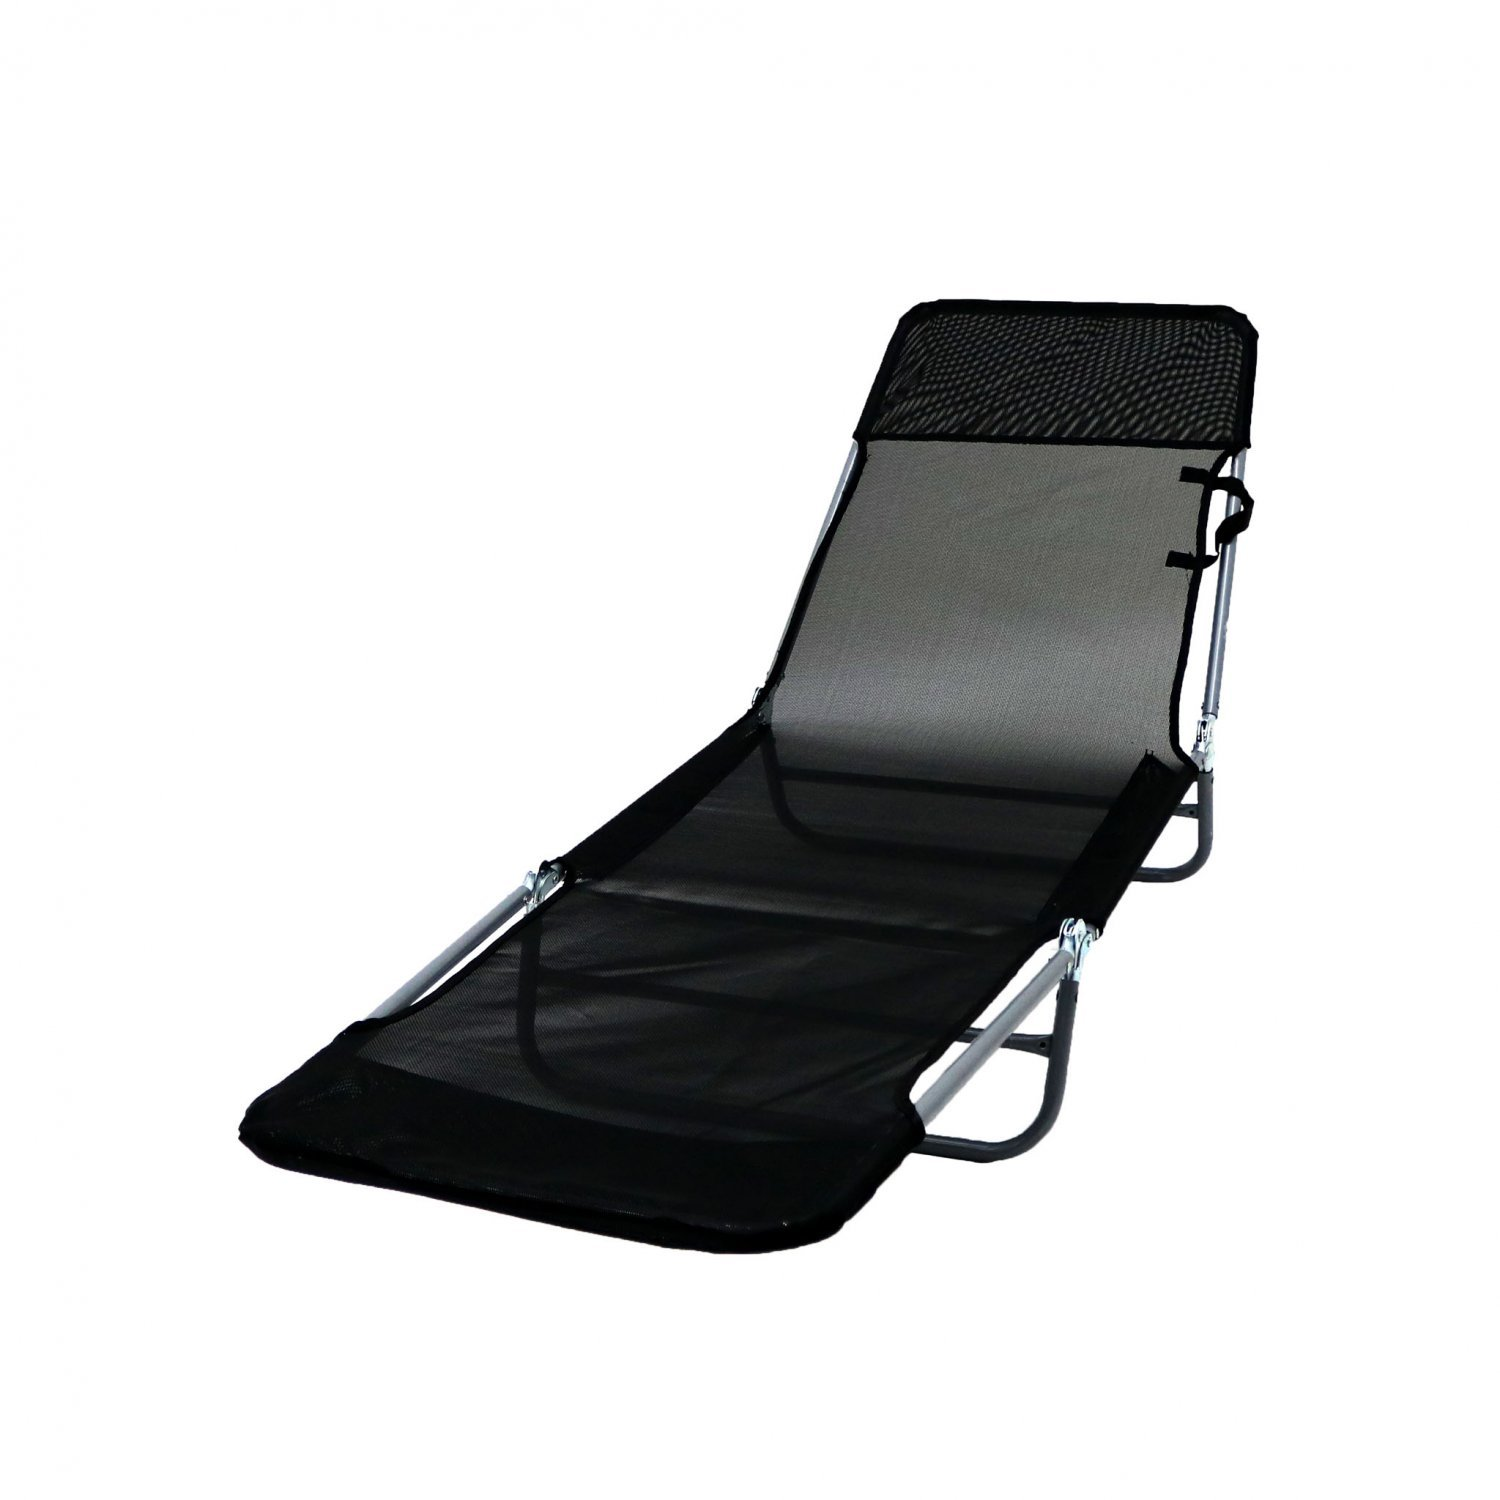 Folding Reclining Sun Lounger Beach Garden Camping Bed